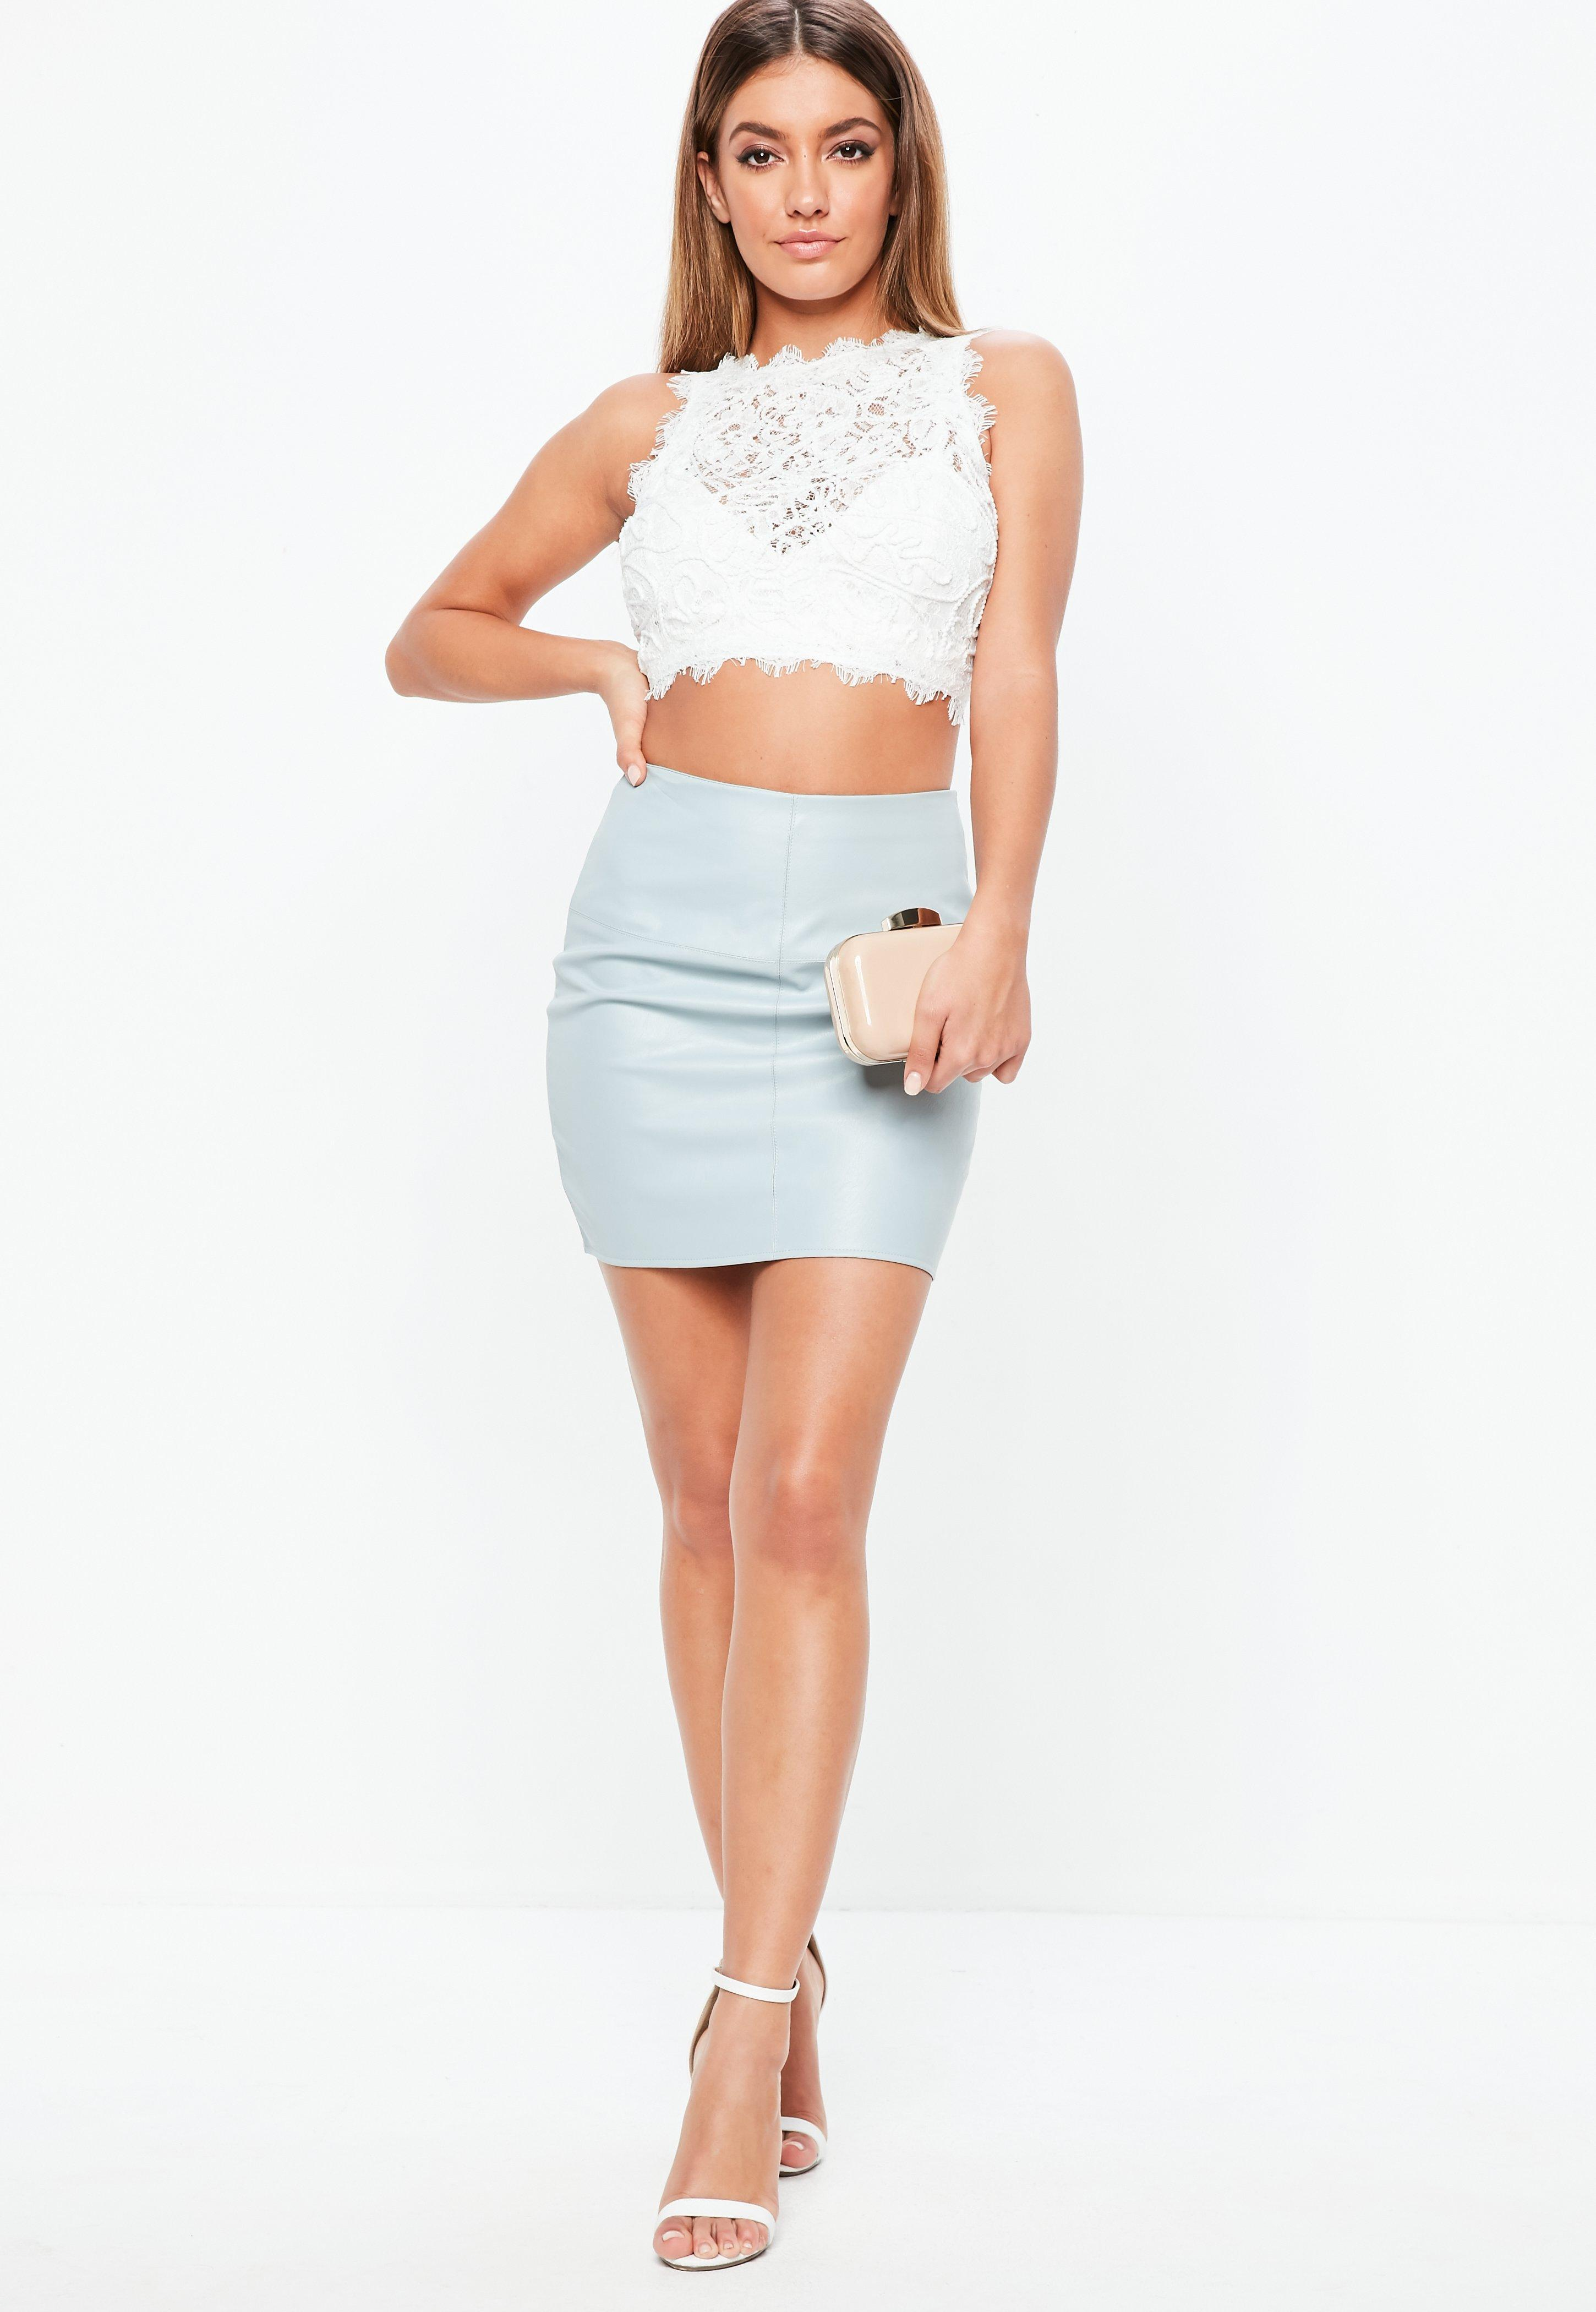 5a24071eafad0 Lyst - Missguided Petite White Cornelli Lace Crop Top in White